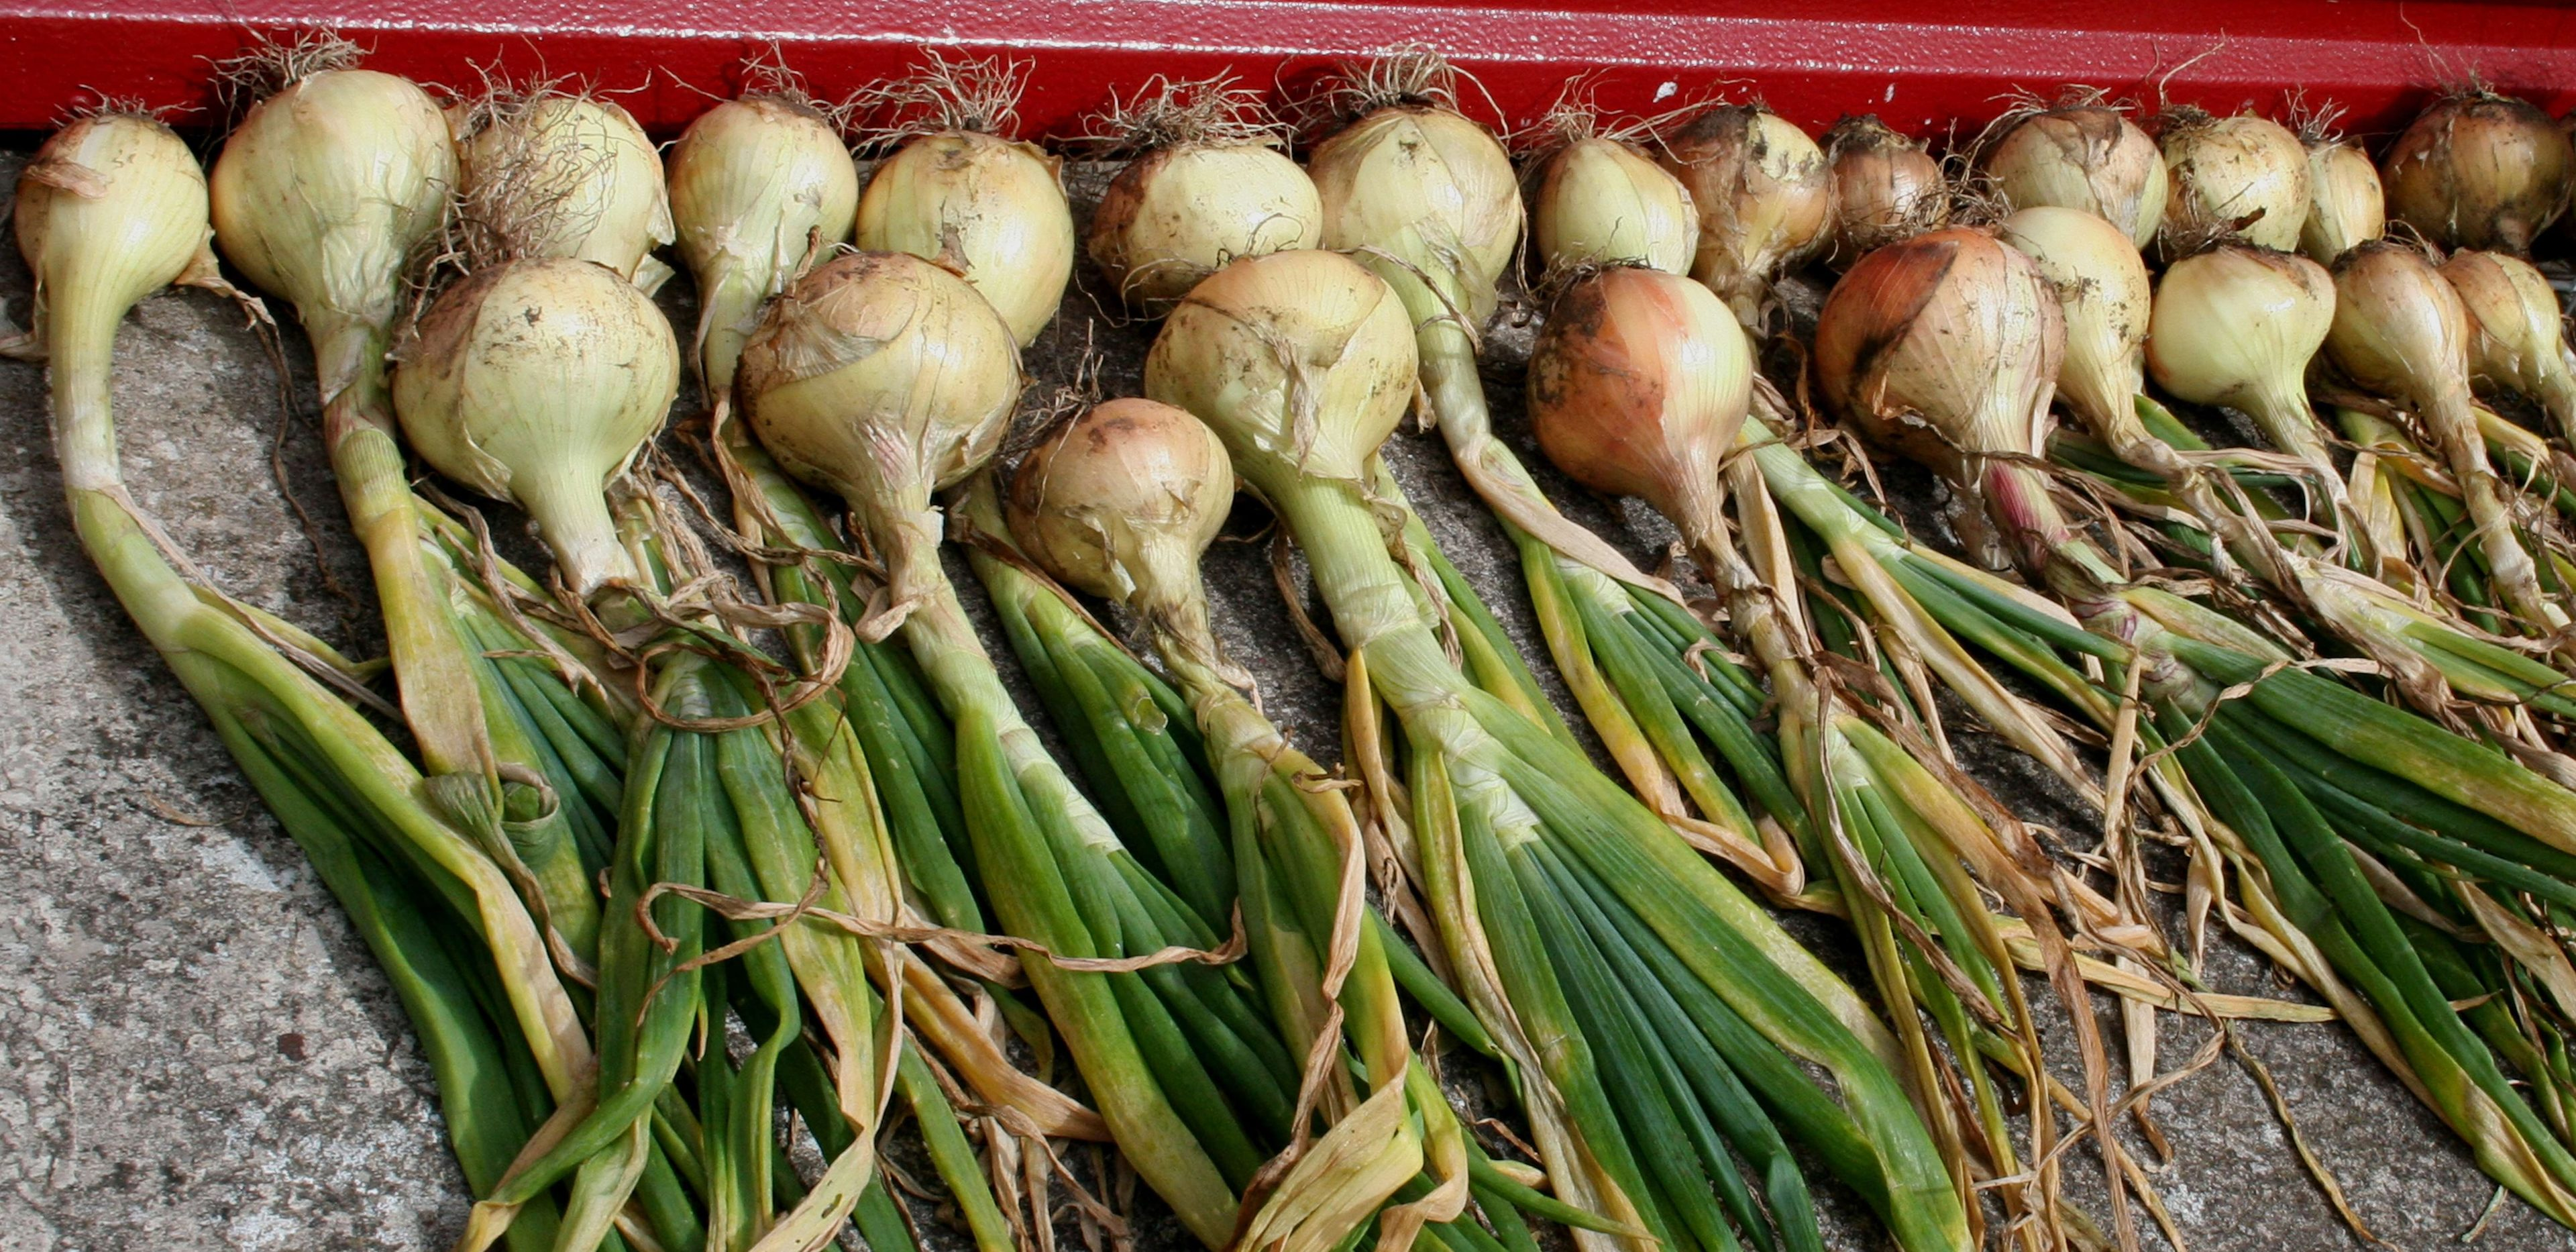 Ripening off the onions